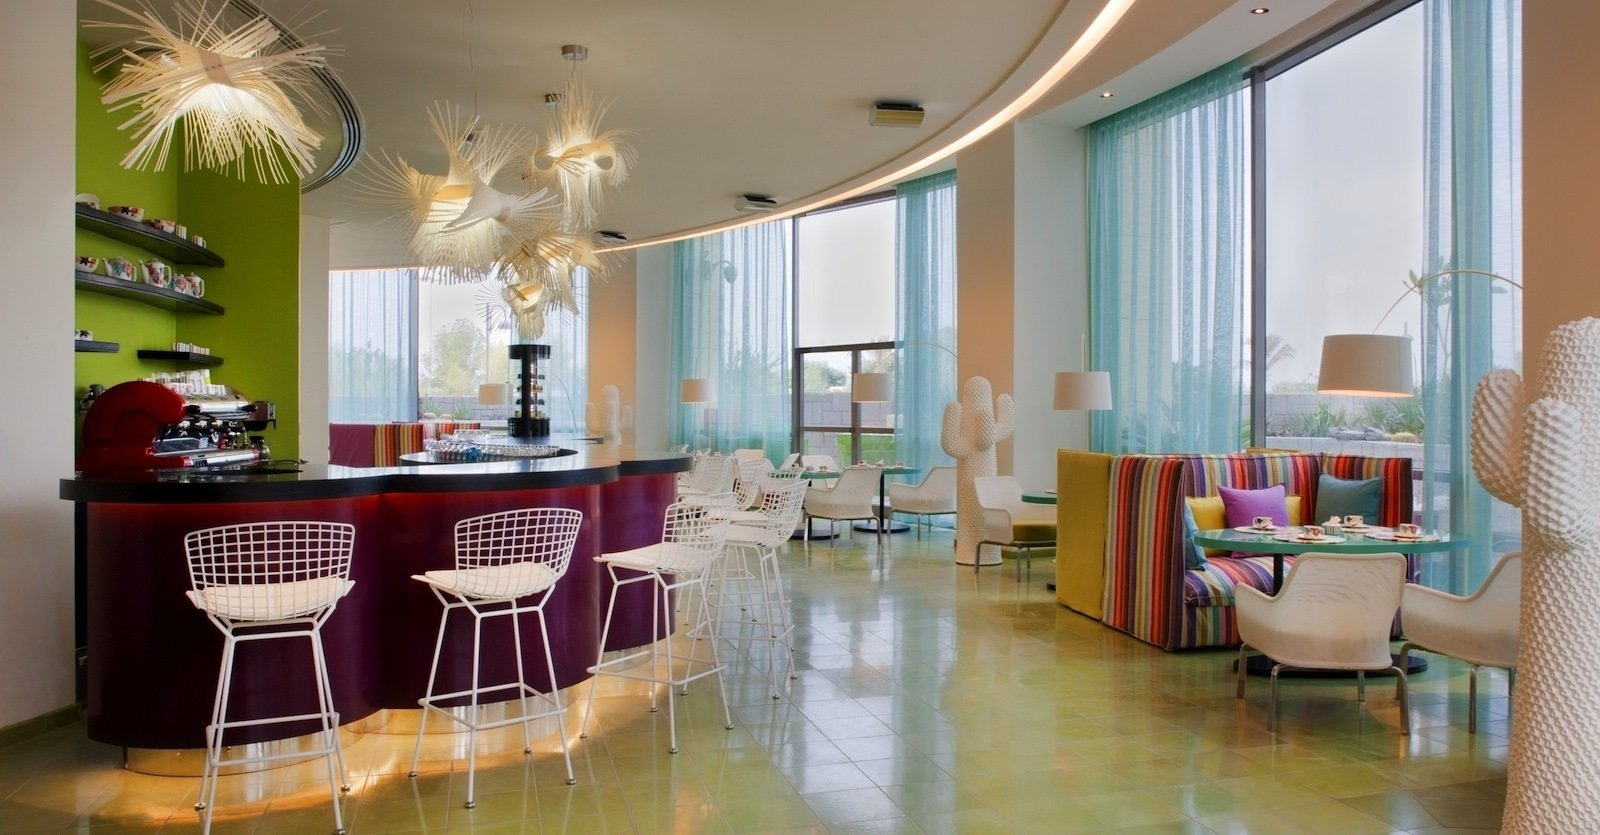 The Choco Bar offers Kuwait a chance to sample two of the best Italian delicacies: chocolate and coffee. The white floor lamps are Marc Saddler Twiggy lamps. The barstools are Bertoia wire chairs. Photo by Gerry O'Leary.  Office from Hotel Missoni Kuwait